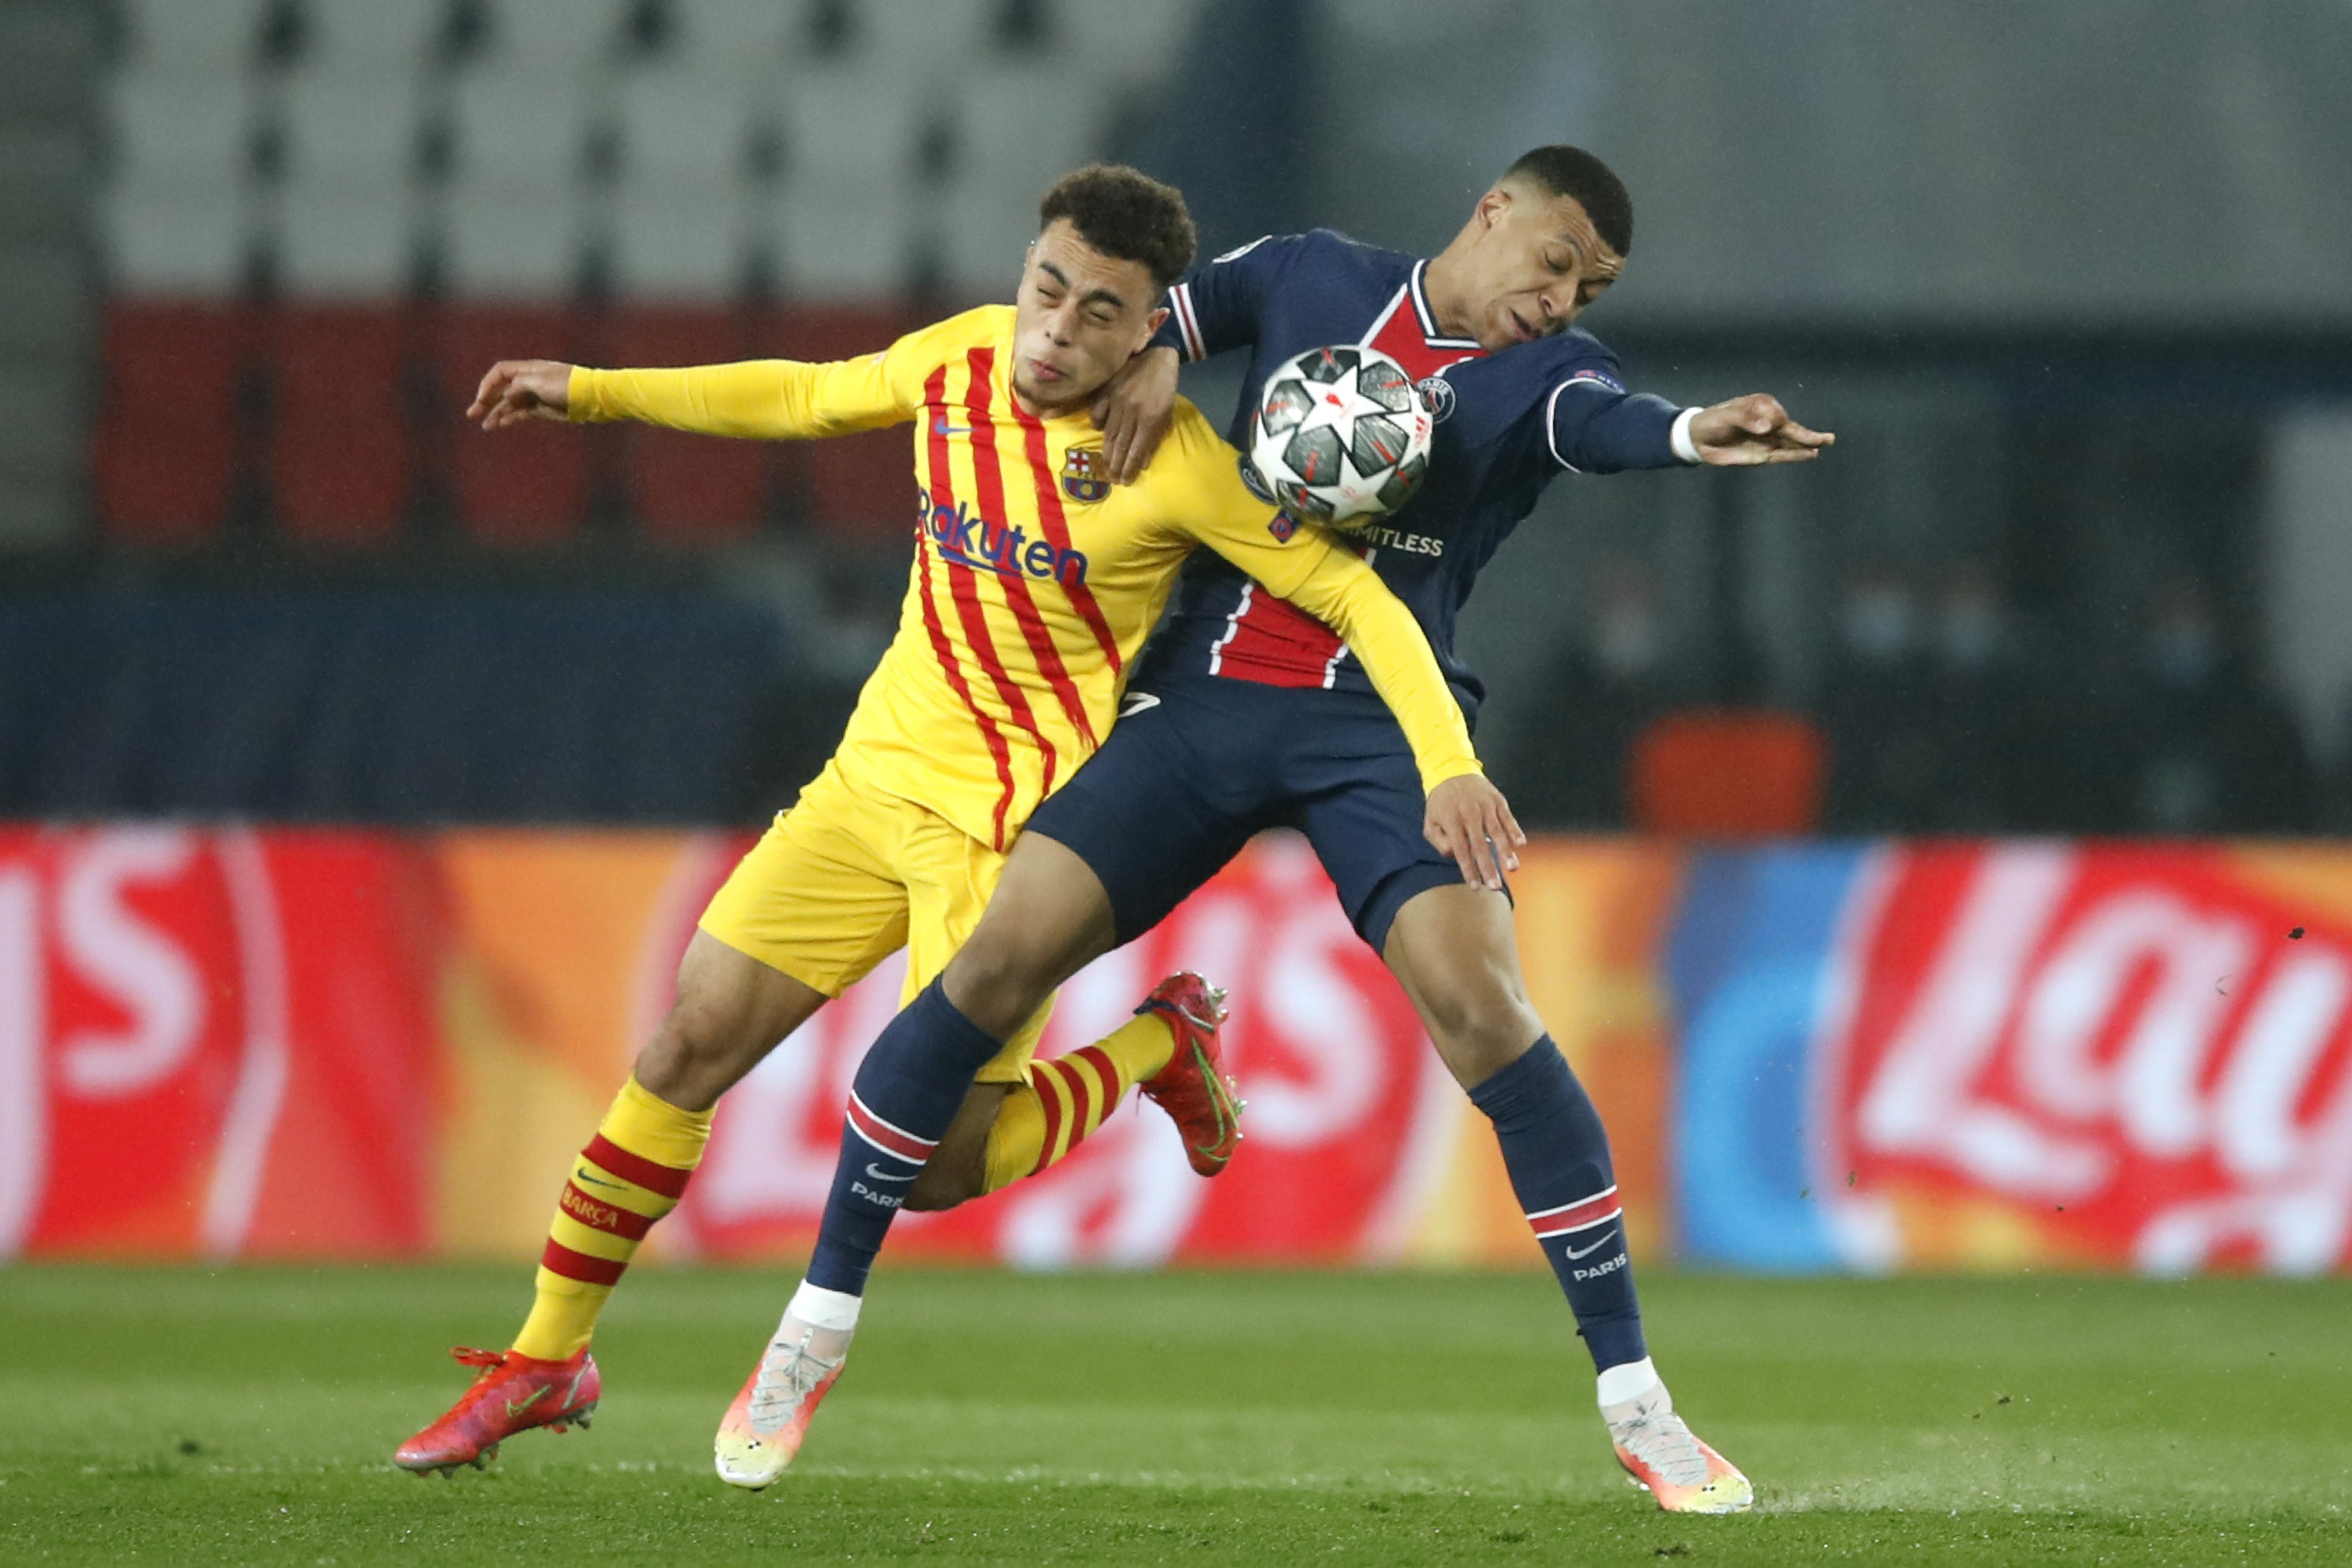 Spanish football morning headlines: Barcelona exit Europe, Laporta desirous of Haaland and Pique outlines pride in teammates